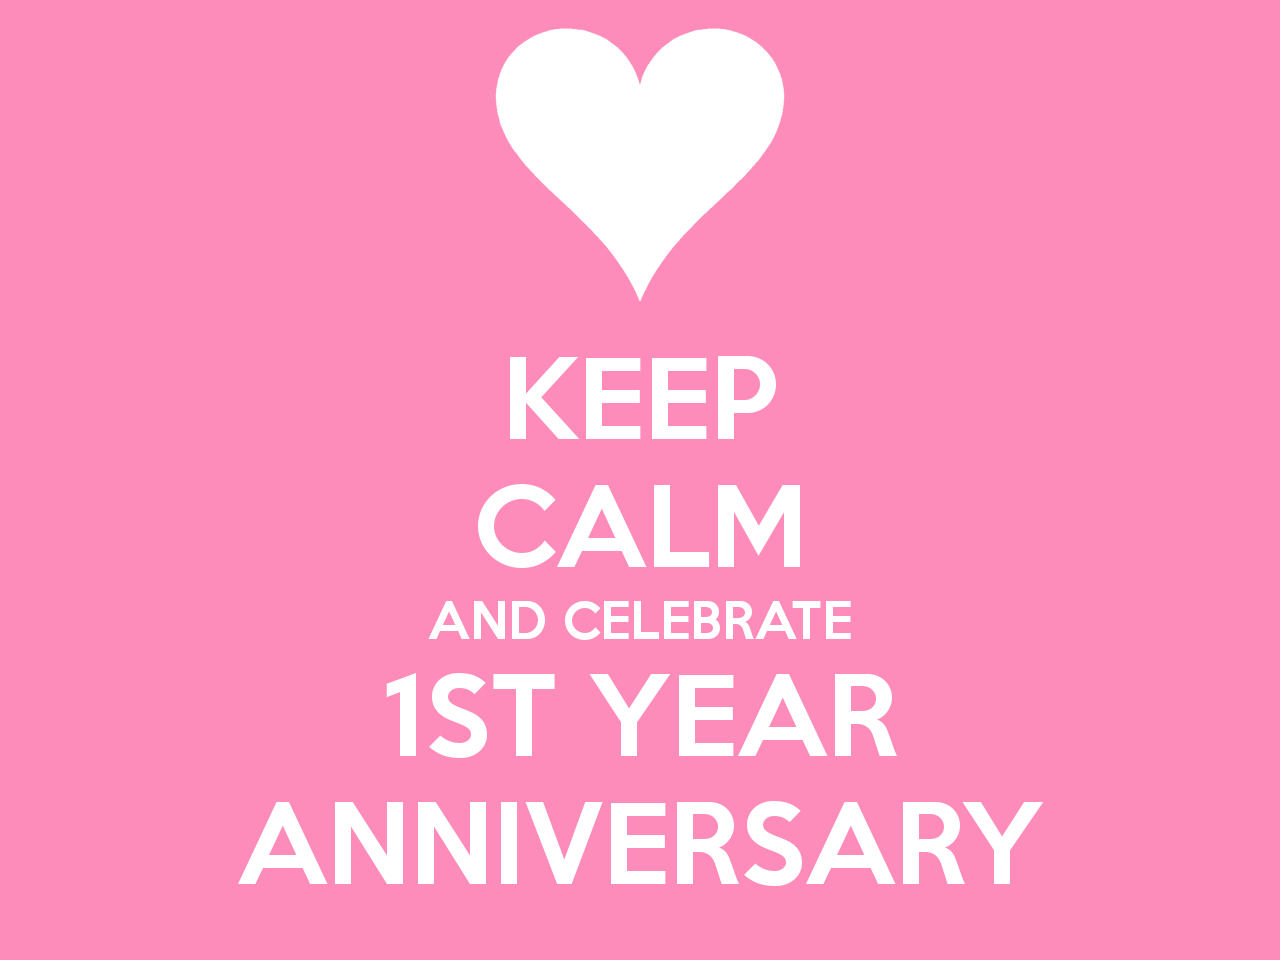 keep-calm-and-celebrate-1st-year-anniversary